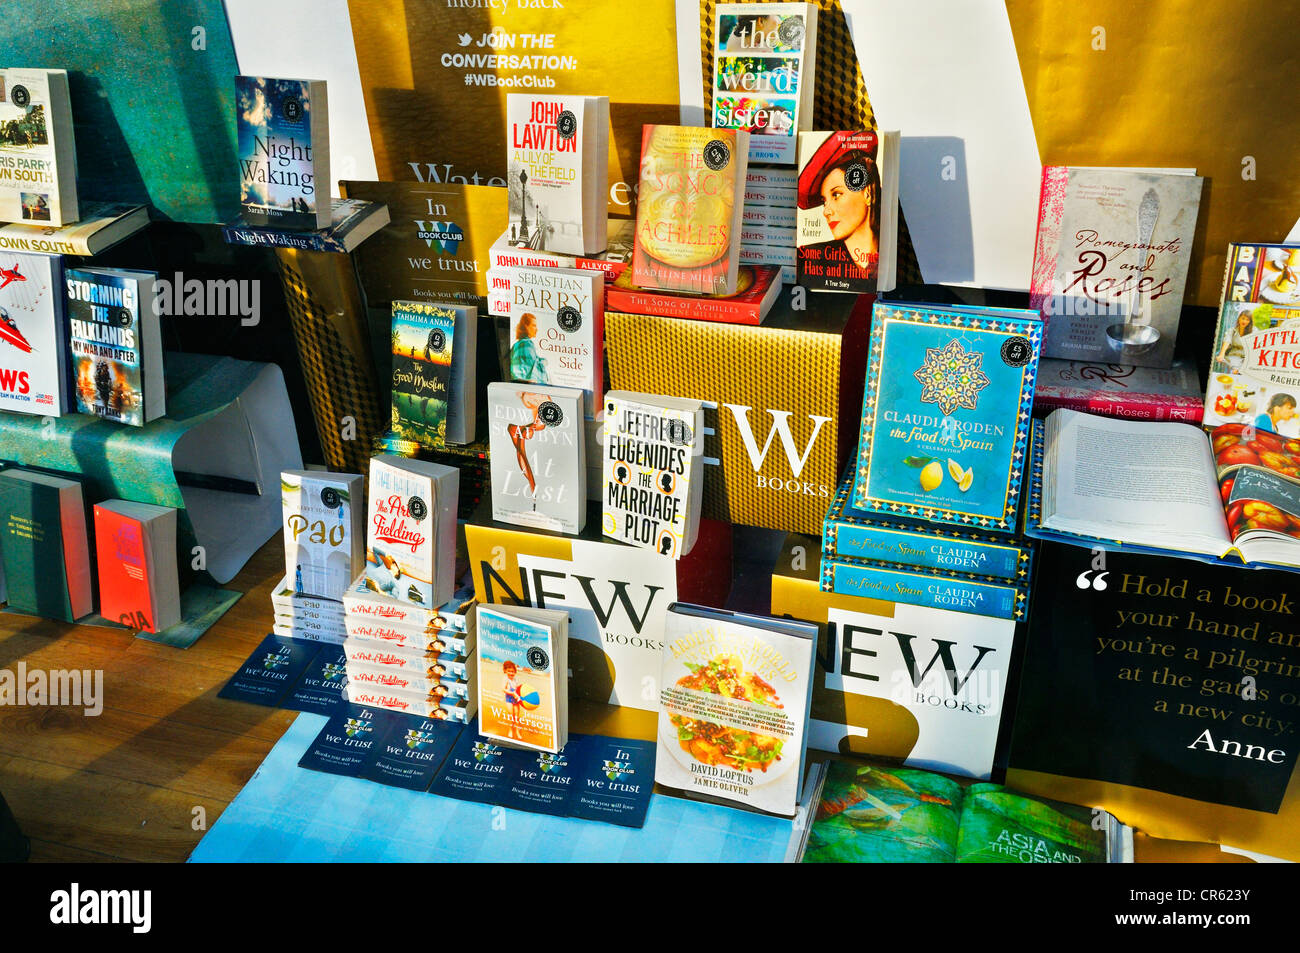 Waterstone's book display - Stock Image